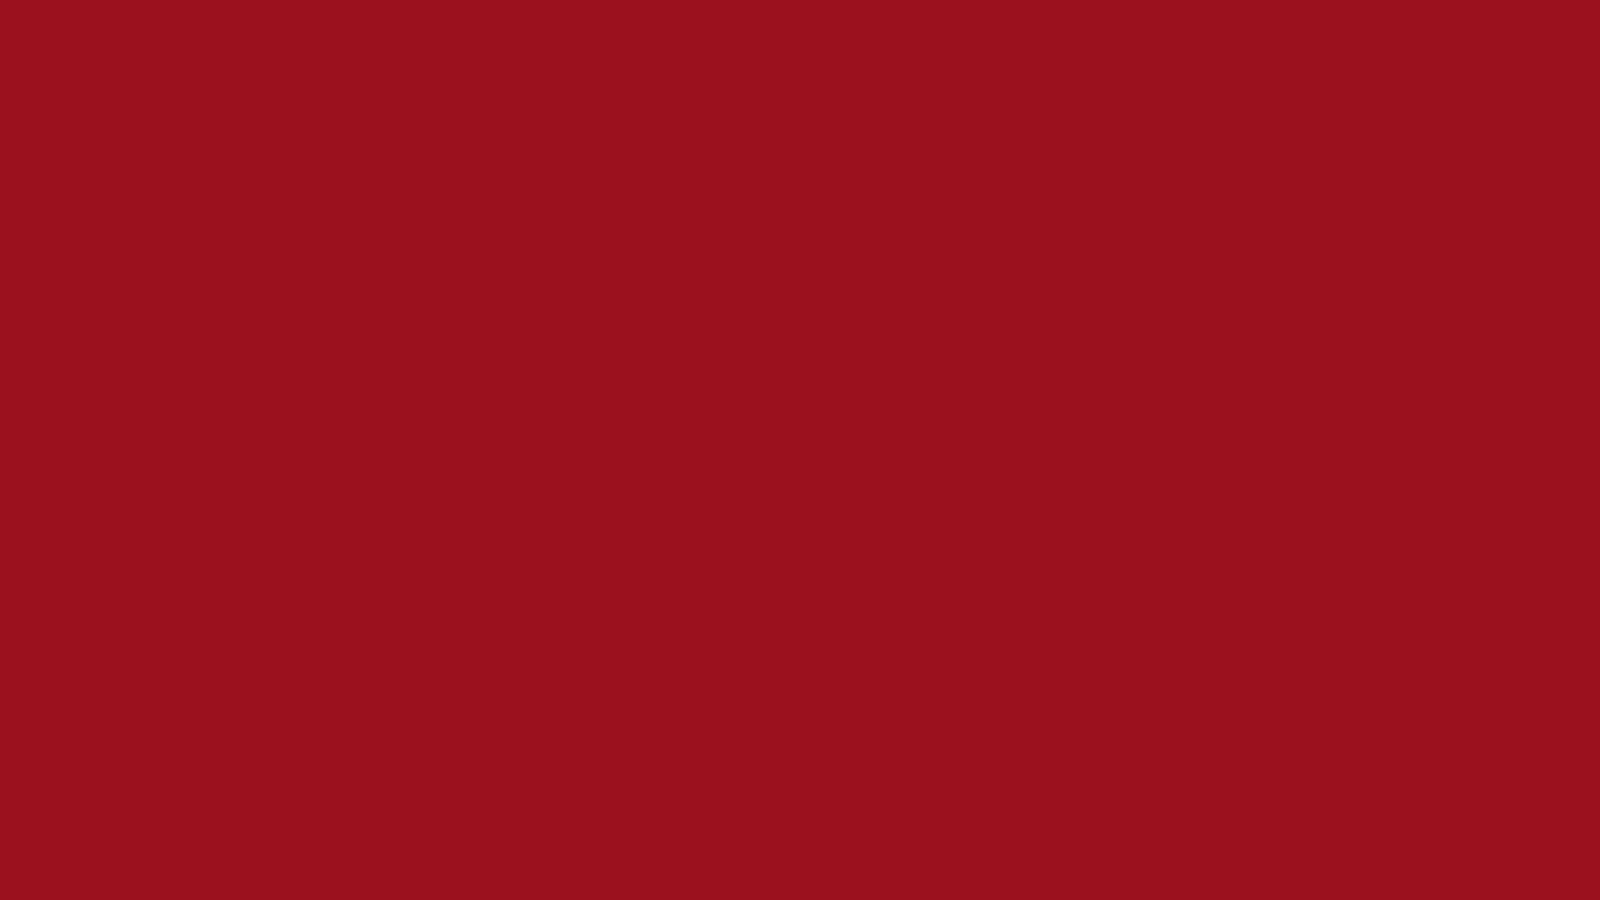 1600x900 Ruby Red Solid Color Background